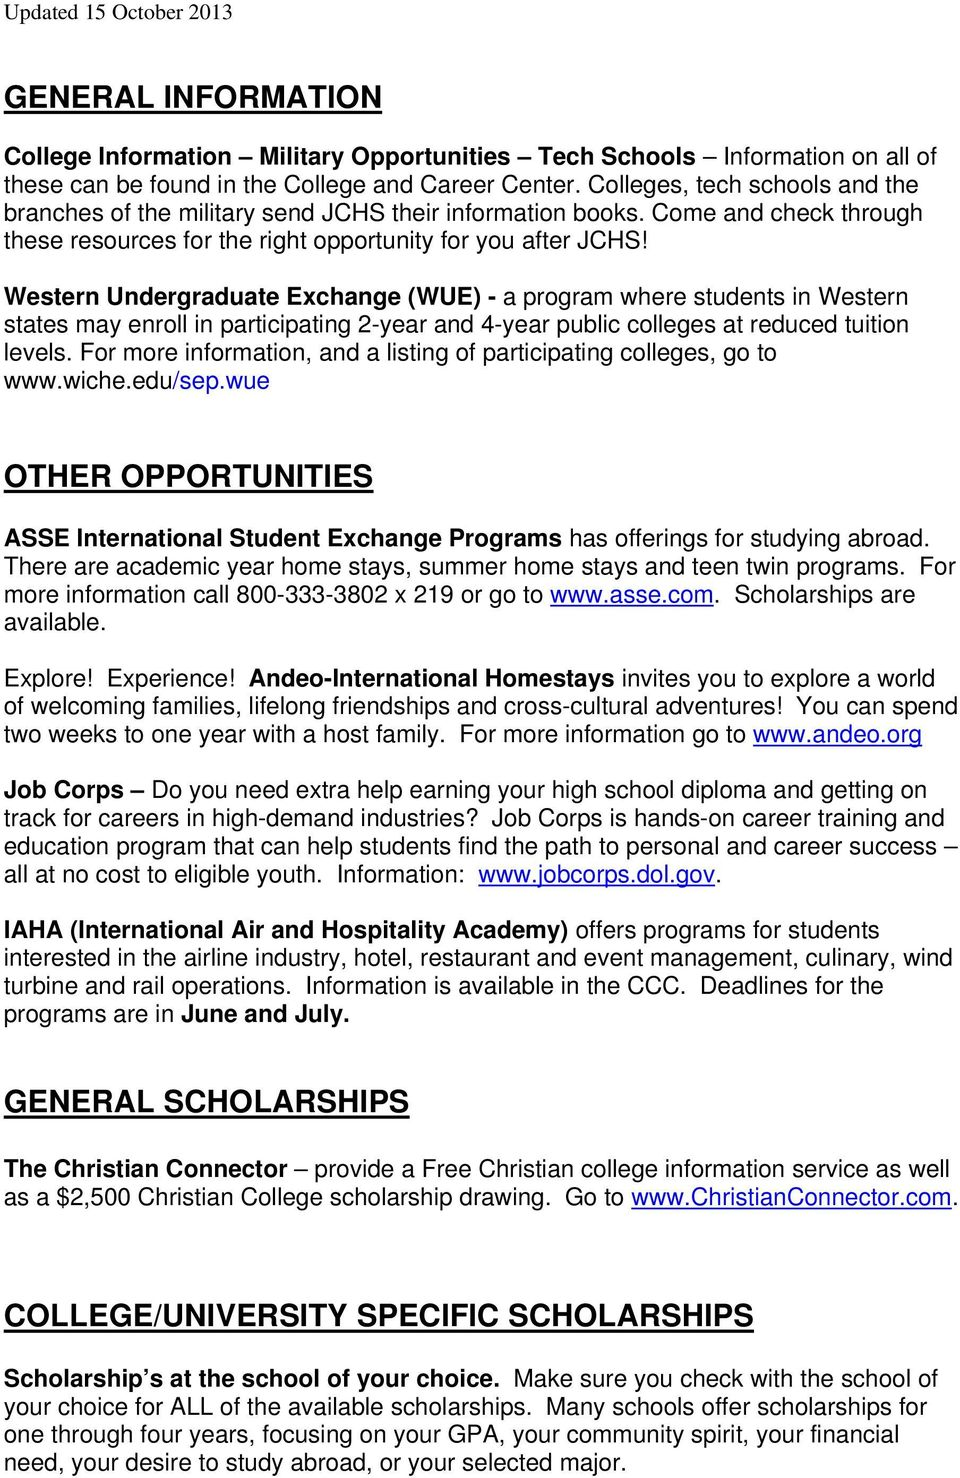 Western Undergraduate Exchange (WUE) - a program where students in Western states may enroll in participating 2-year and 4-year public colleges at reduced tuition levels.